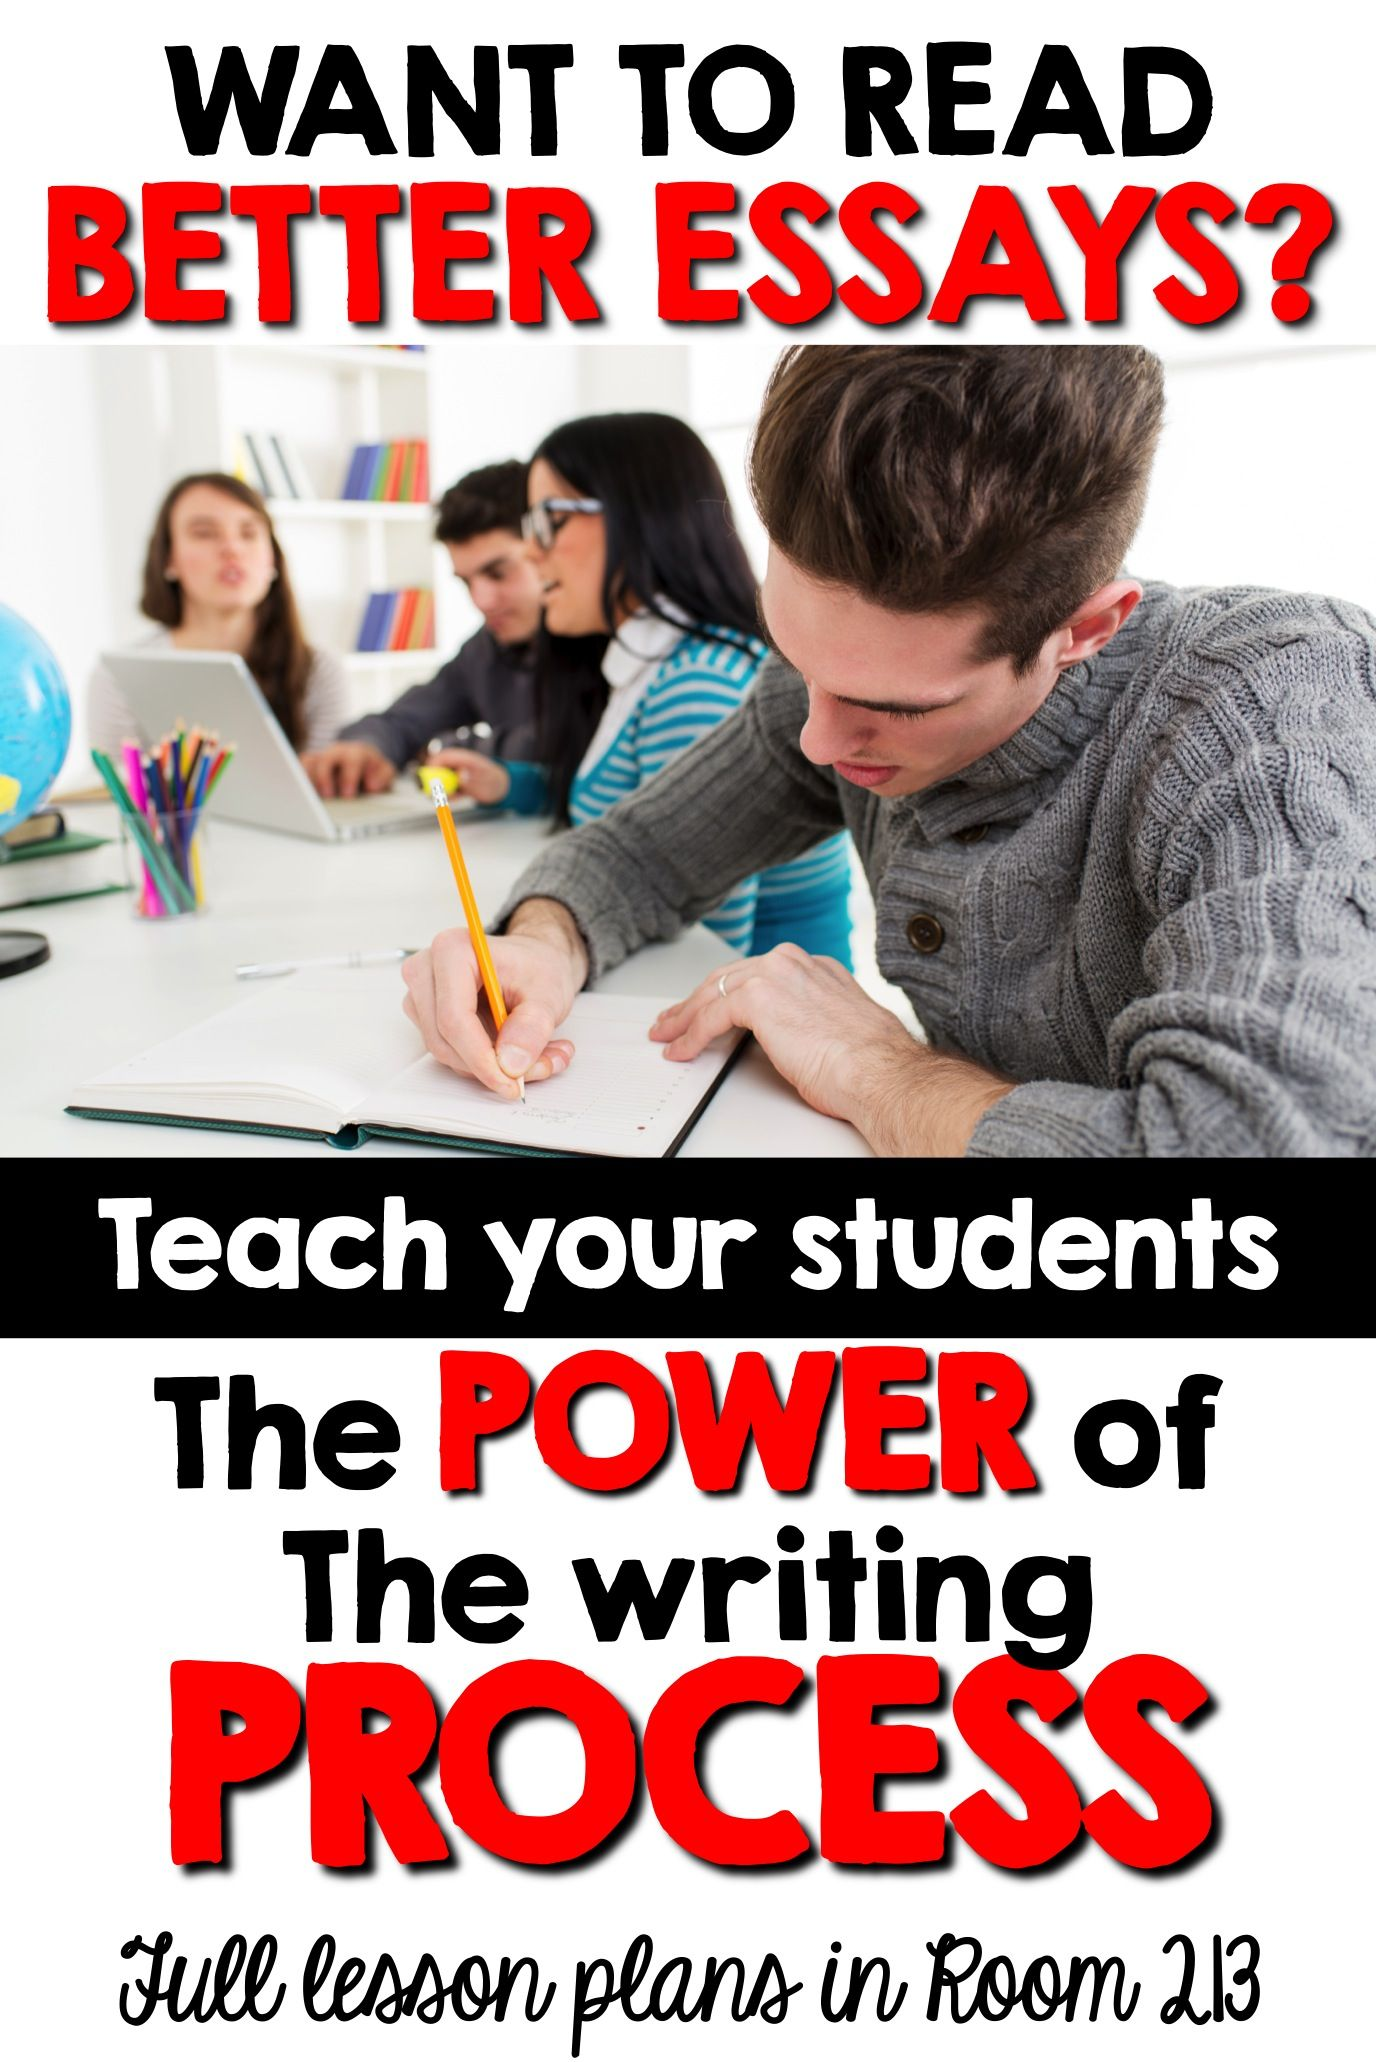 persuasive essay writing a journey through the process  writing  writing lessons for high school english that focus on the power of process  marking those essays will be much less painful when your students spend the  time